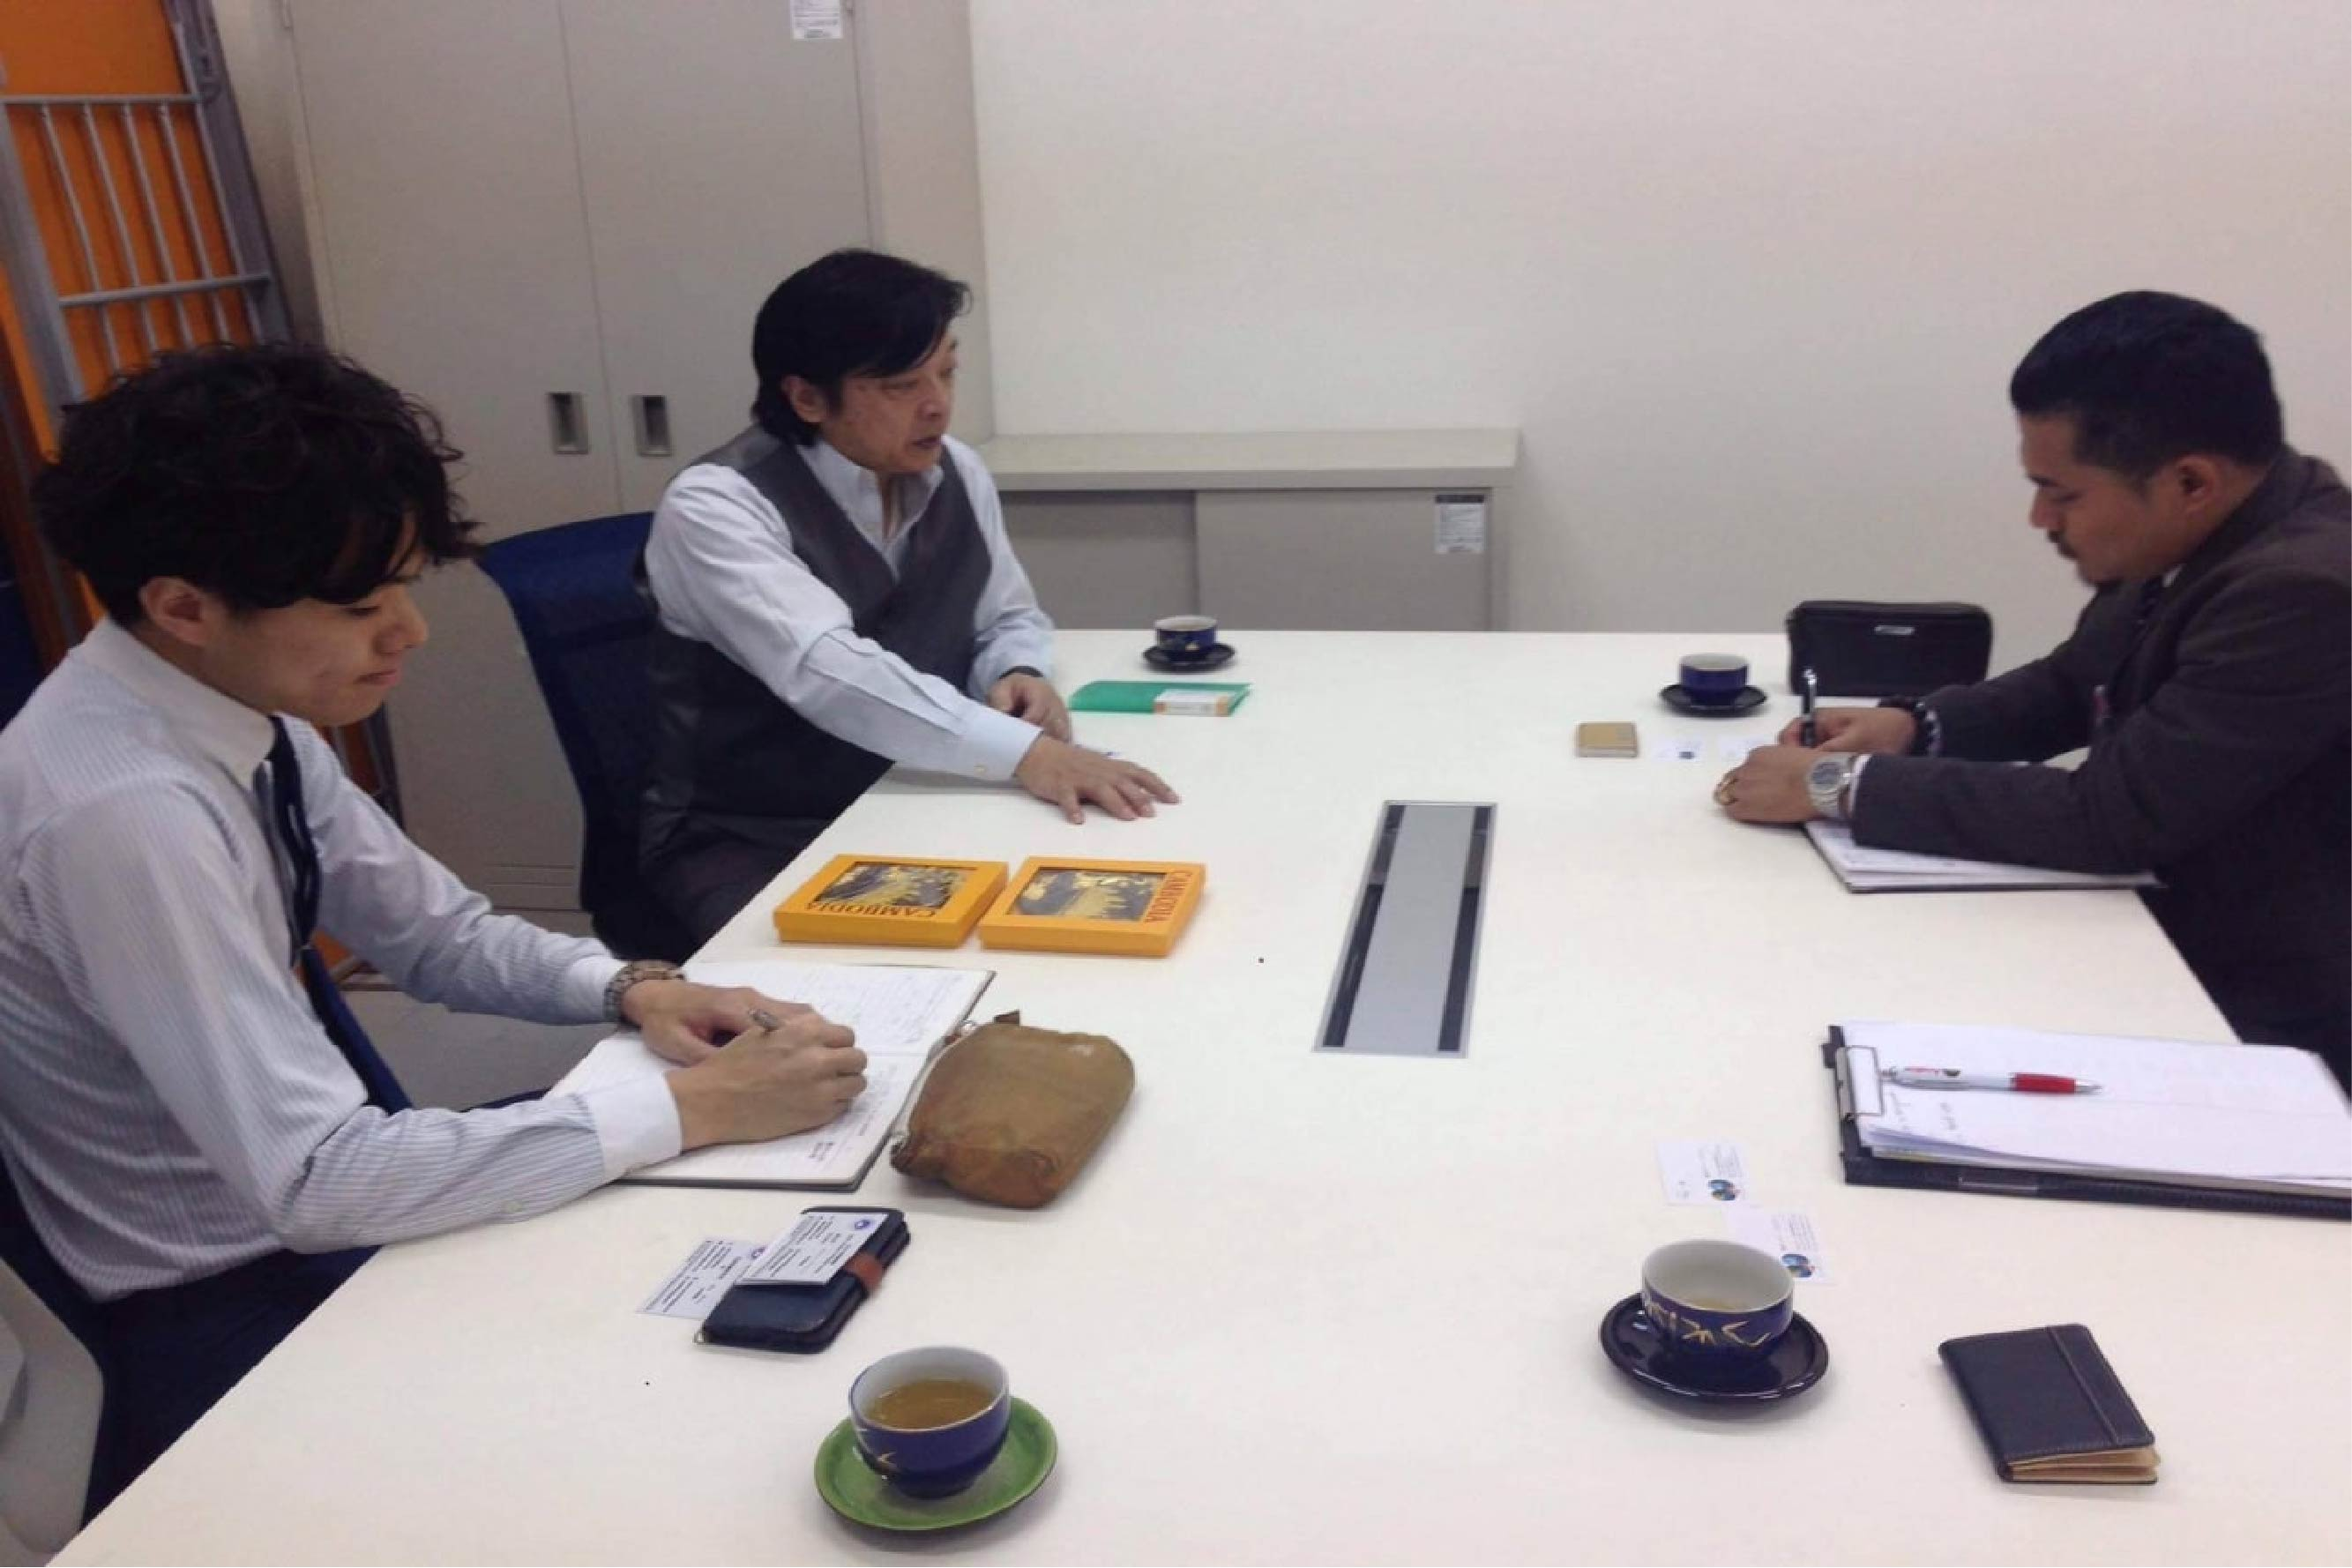 Meeting with Other University in Tokyo